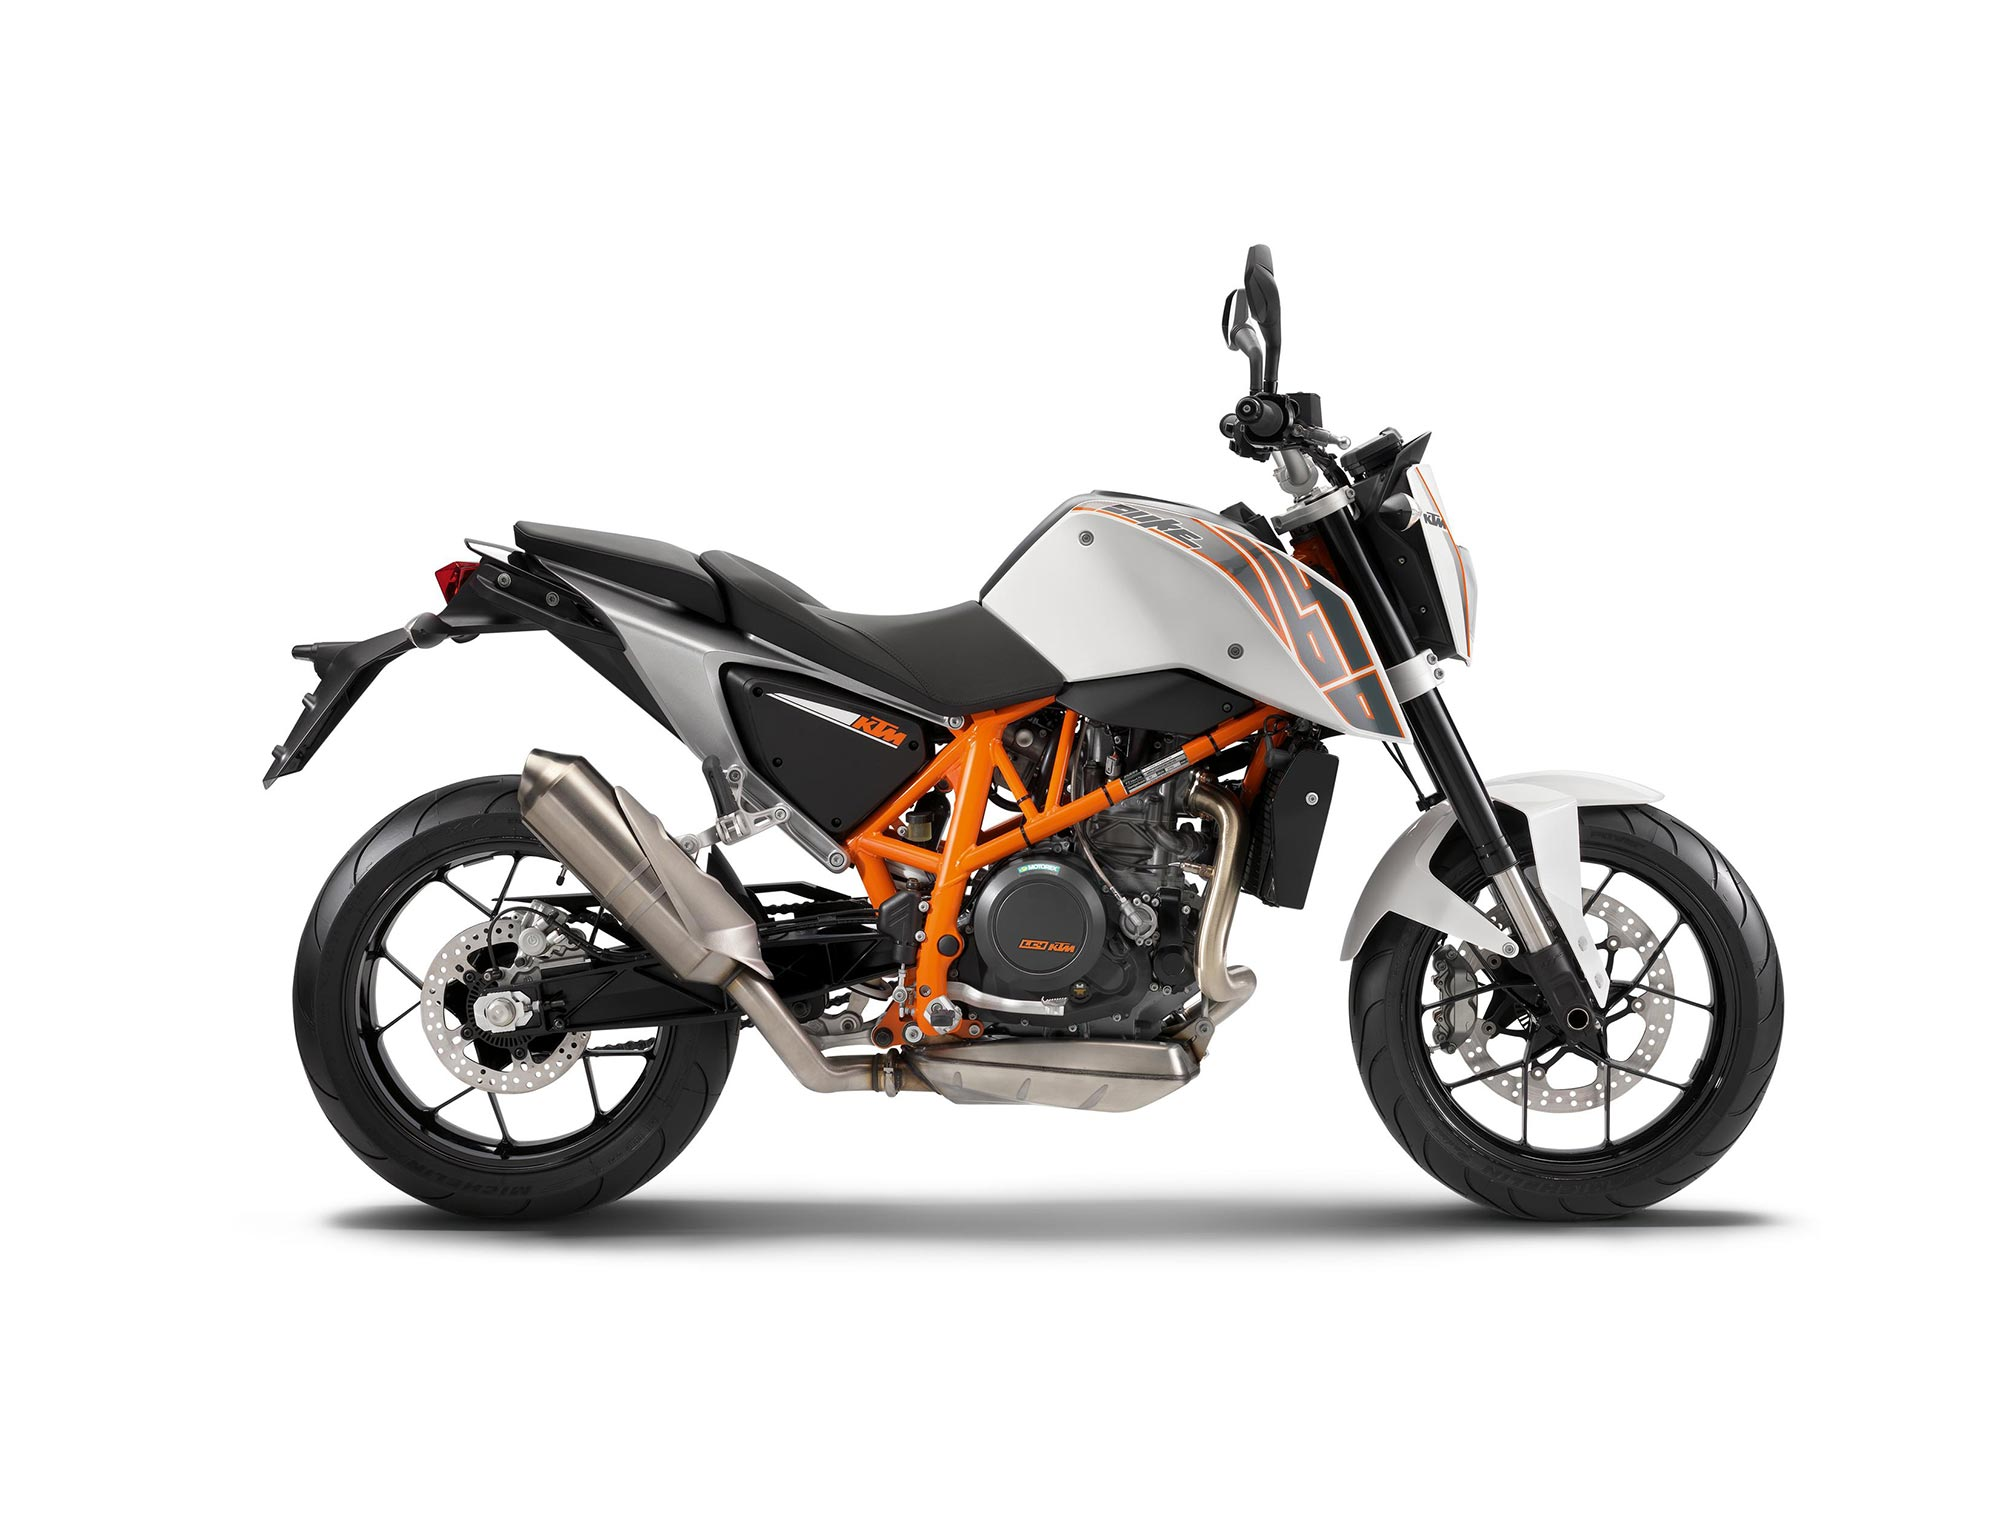 Ktm Wire Harness Routing Not Lossing Wiring Diagram Aircraft 690 Simple Schema Rh 19 Lodge Finder De